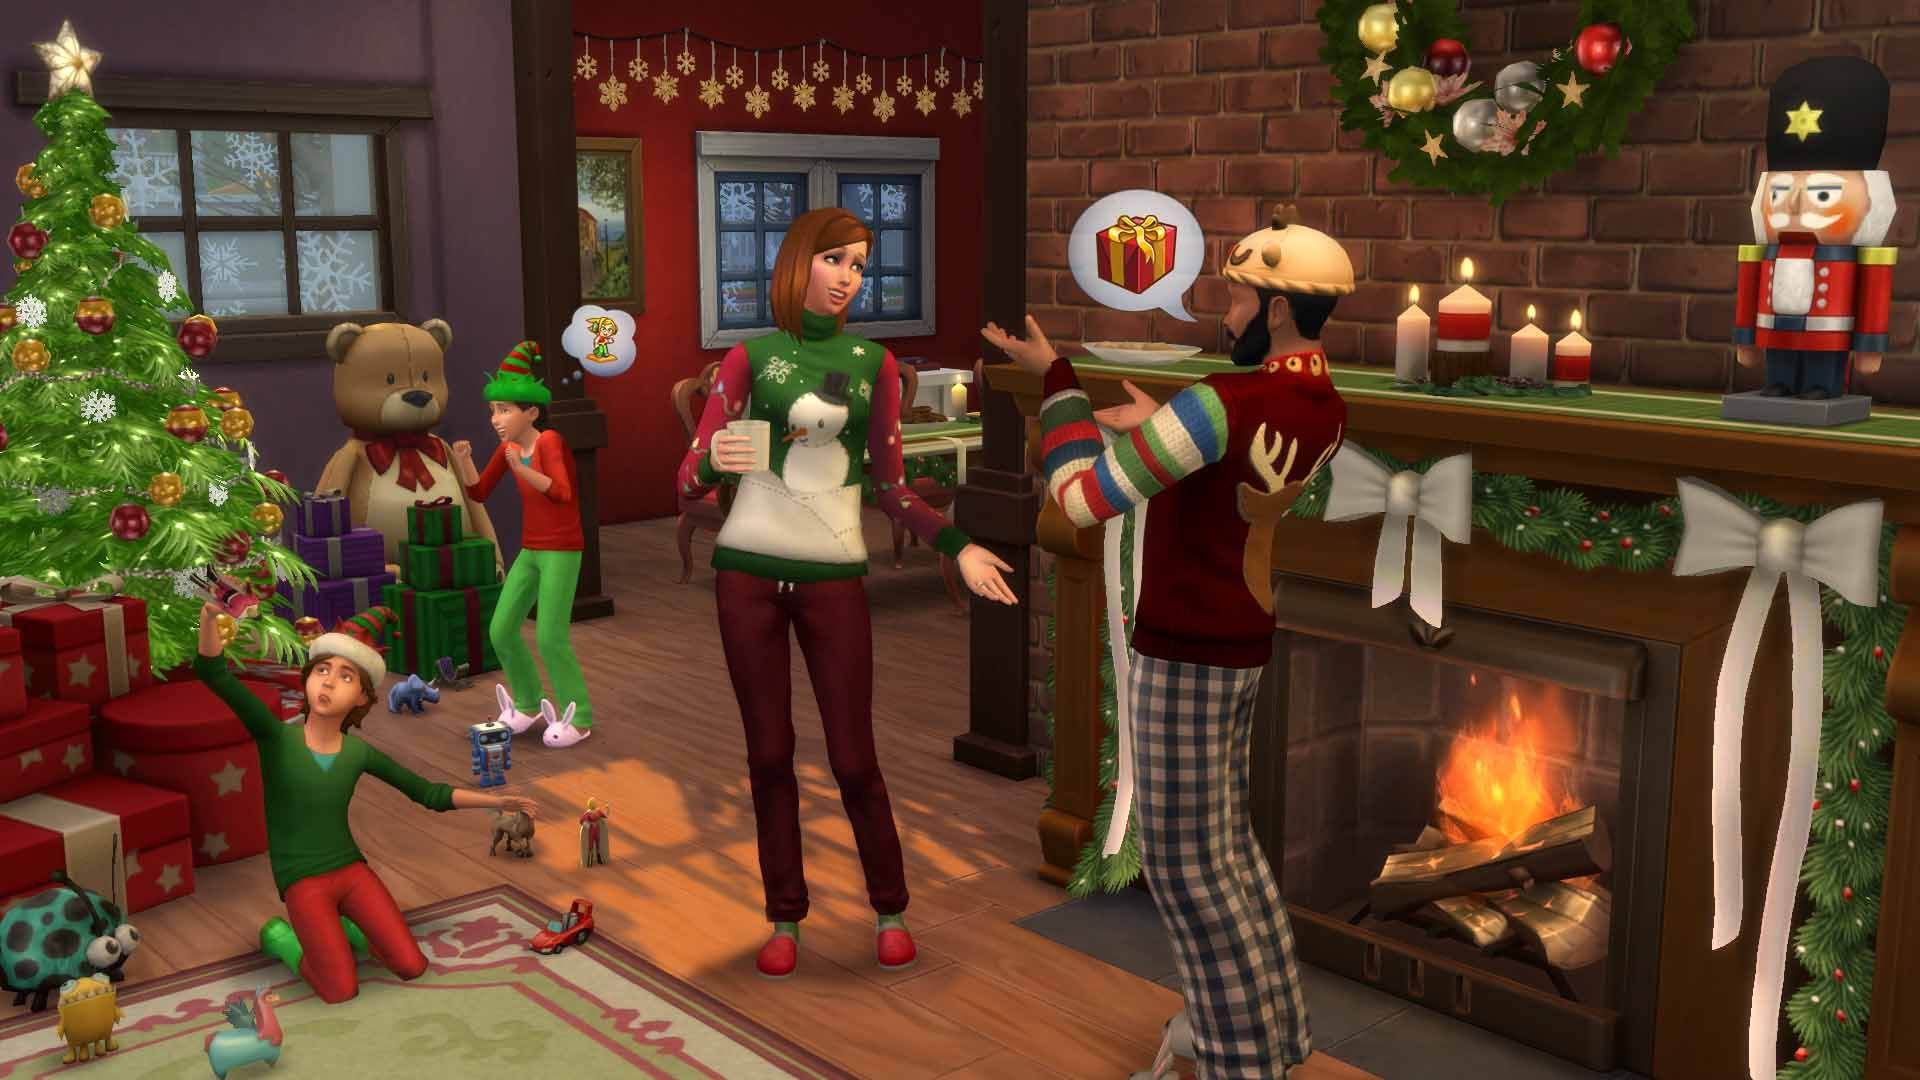 TS4_865_HOLIDAY_SCREEN_001.jpg?_ga=2.260981833.554081727.1513593942-1399904047.1512737270